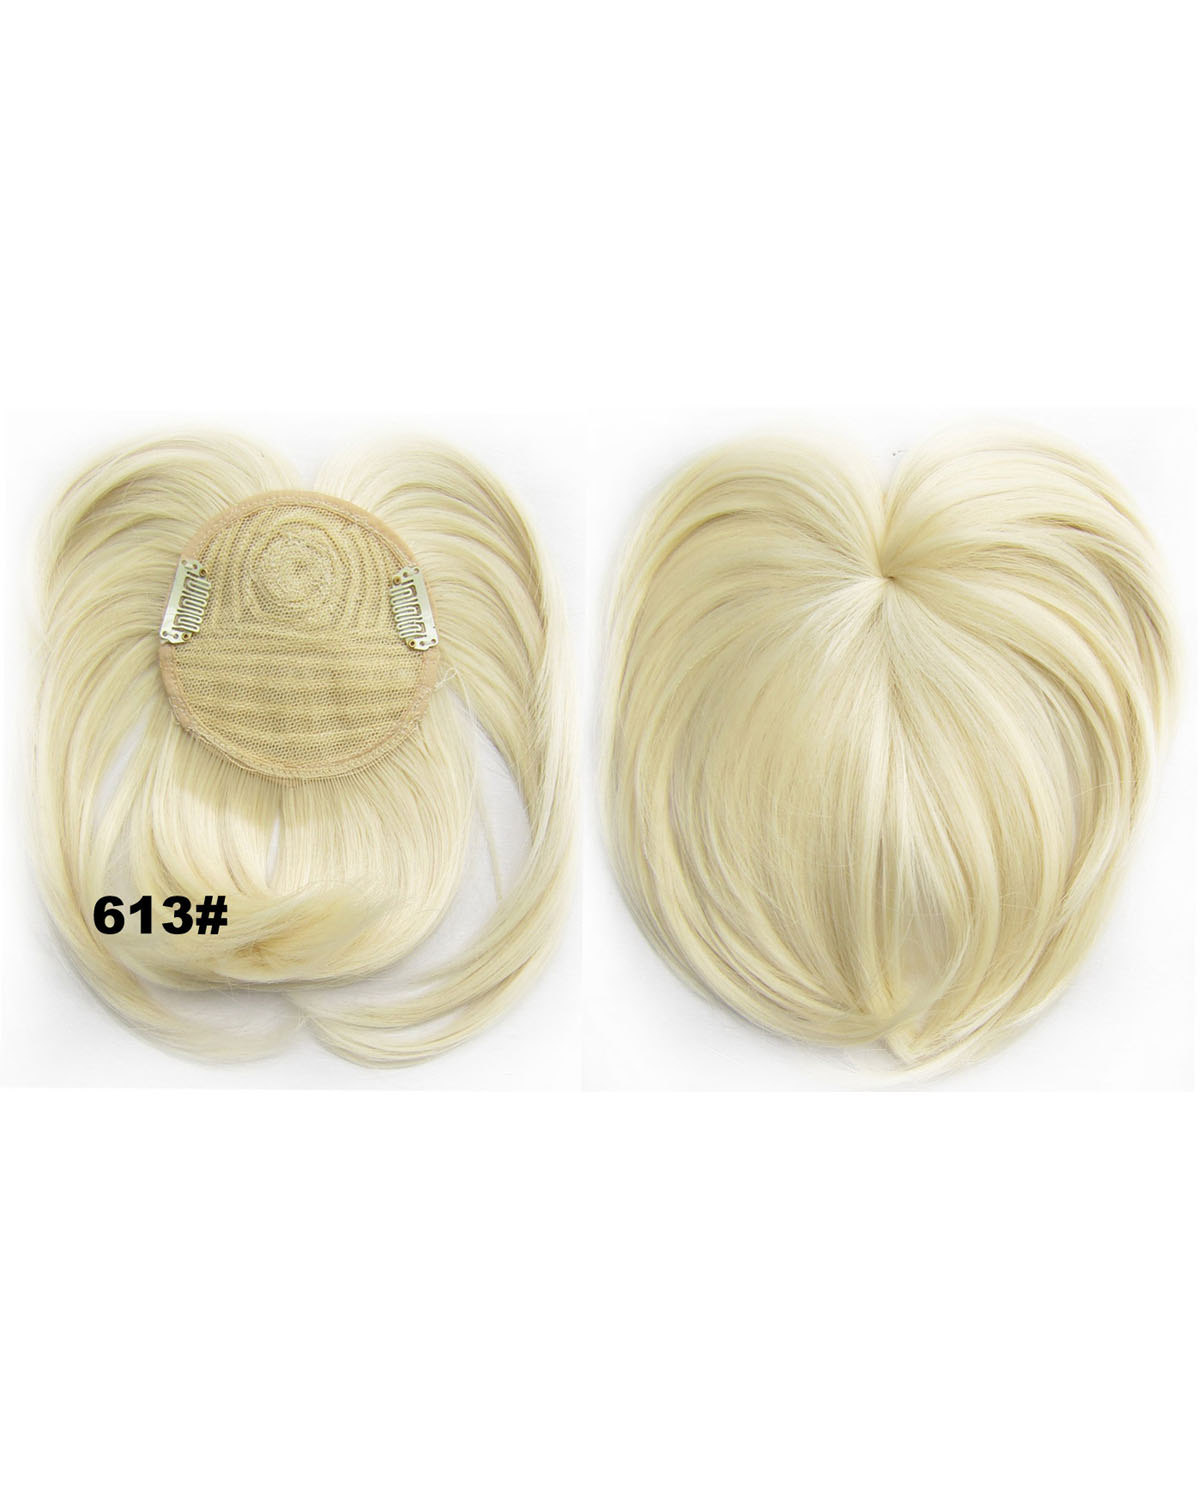 Girls Silky Straight Short Bangs Clip in Synthetic Hair Extension Fringe Bangs Hairpiece 613#